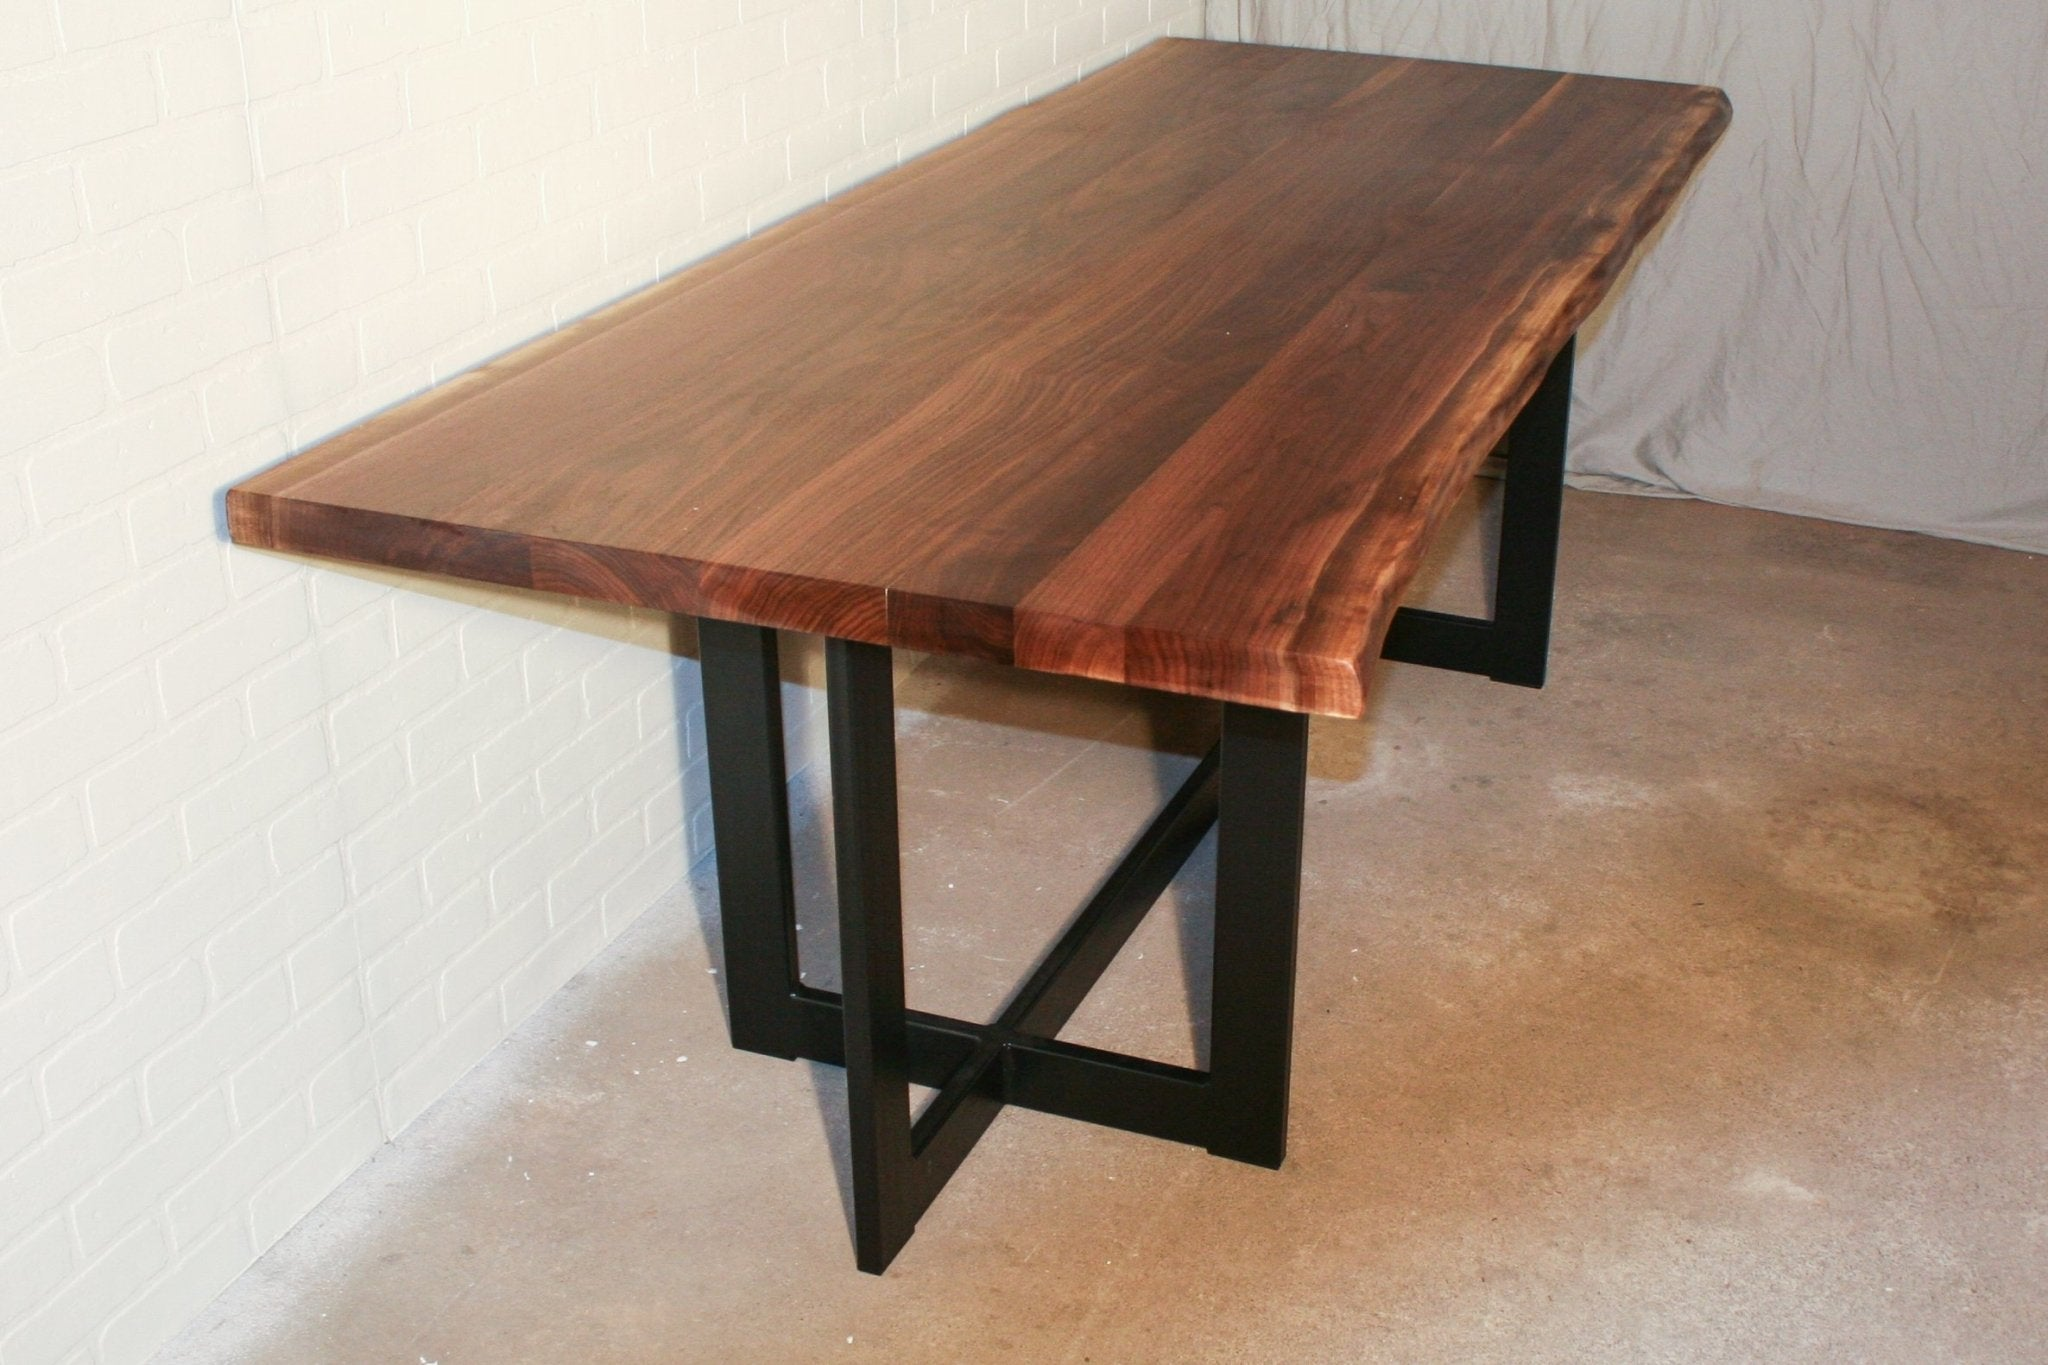 Live Edge Walnut Table with Crib Base - Loewen Design Studios